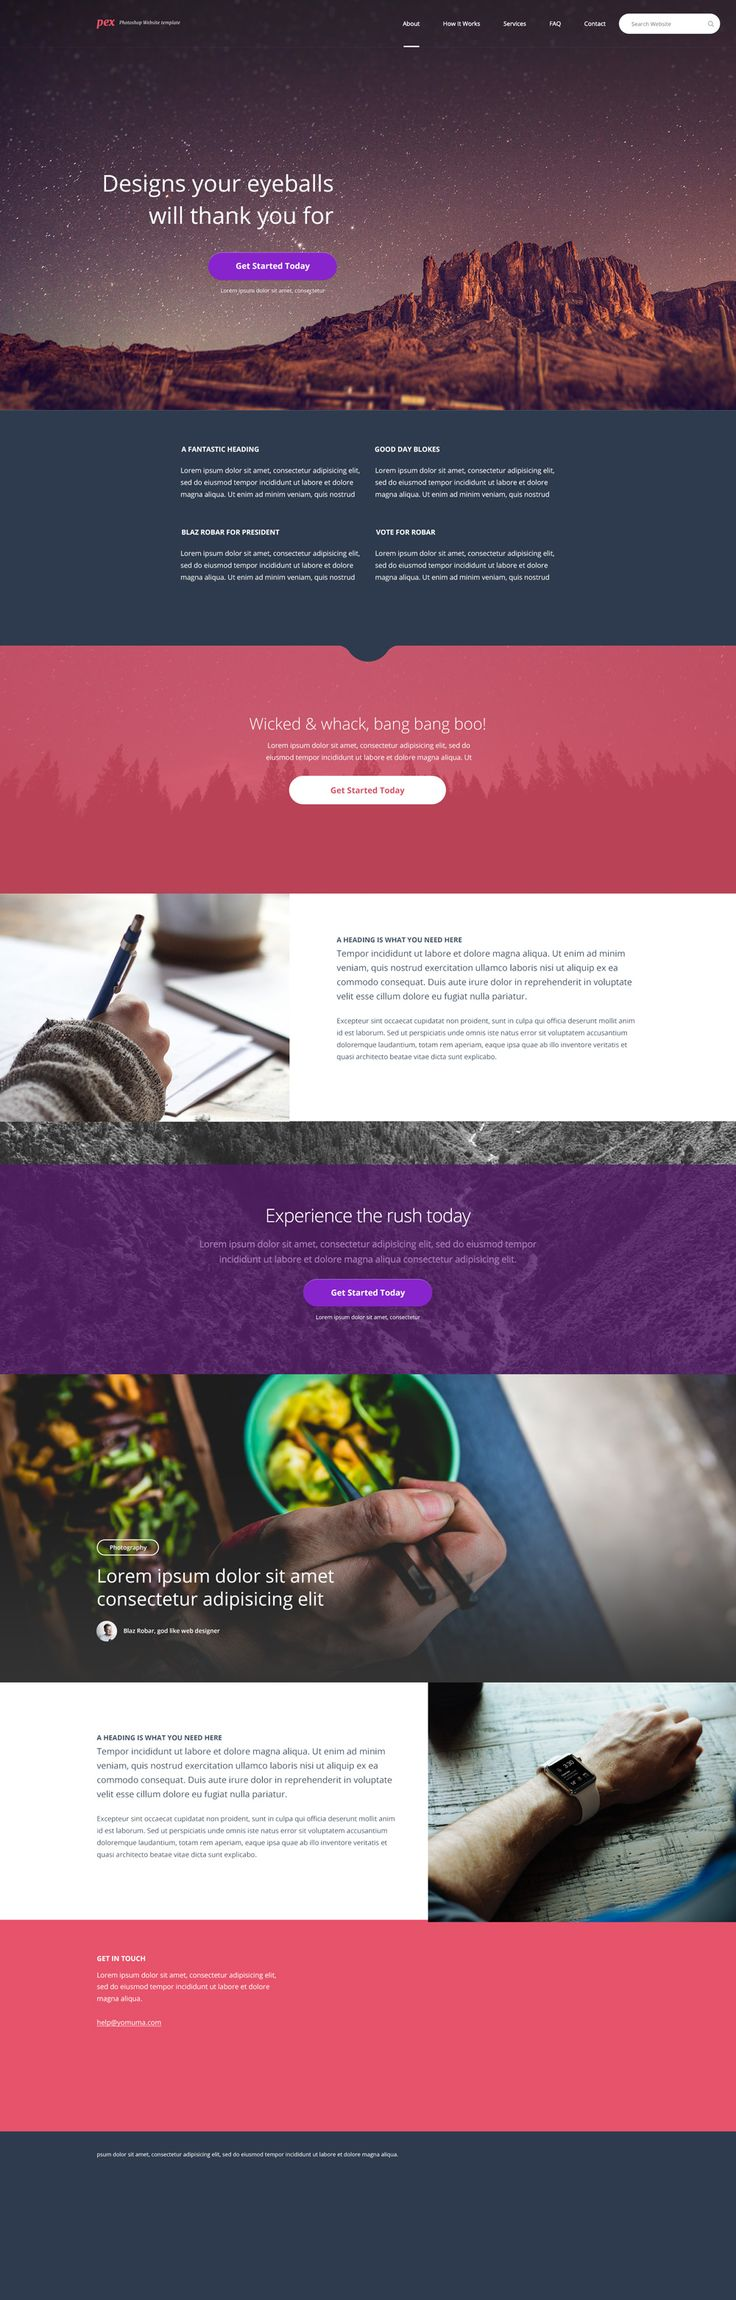 Pex – A free website home page Photoshop PSD An image heavy and block layout template, this website design really suits bold colours, large headline text and dominant imagery. #webdesign